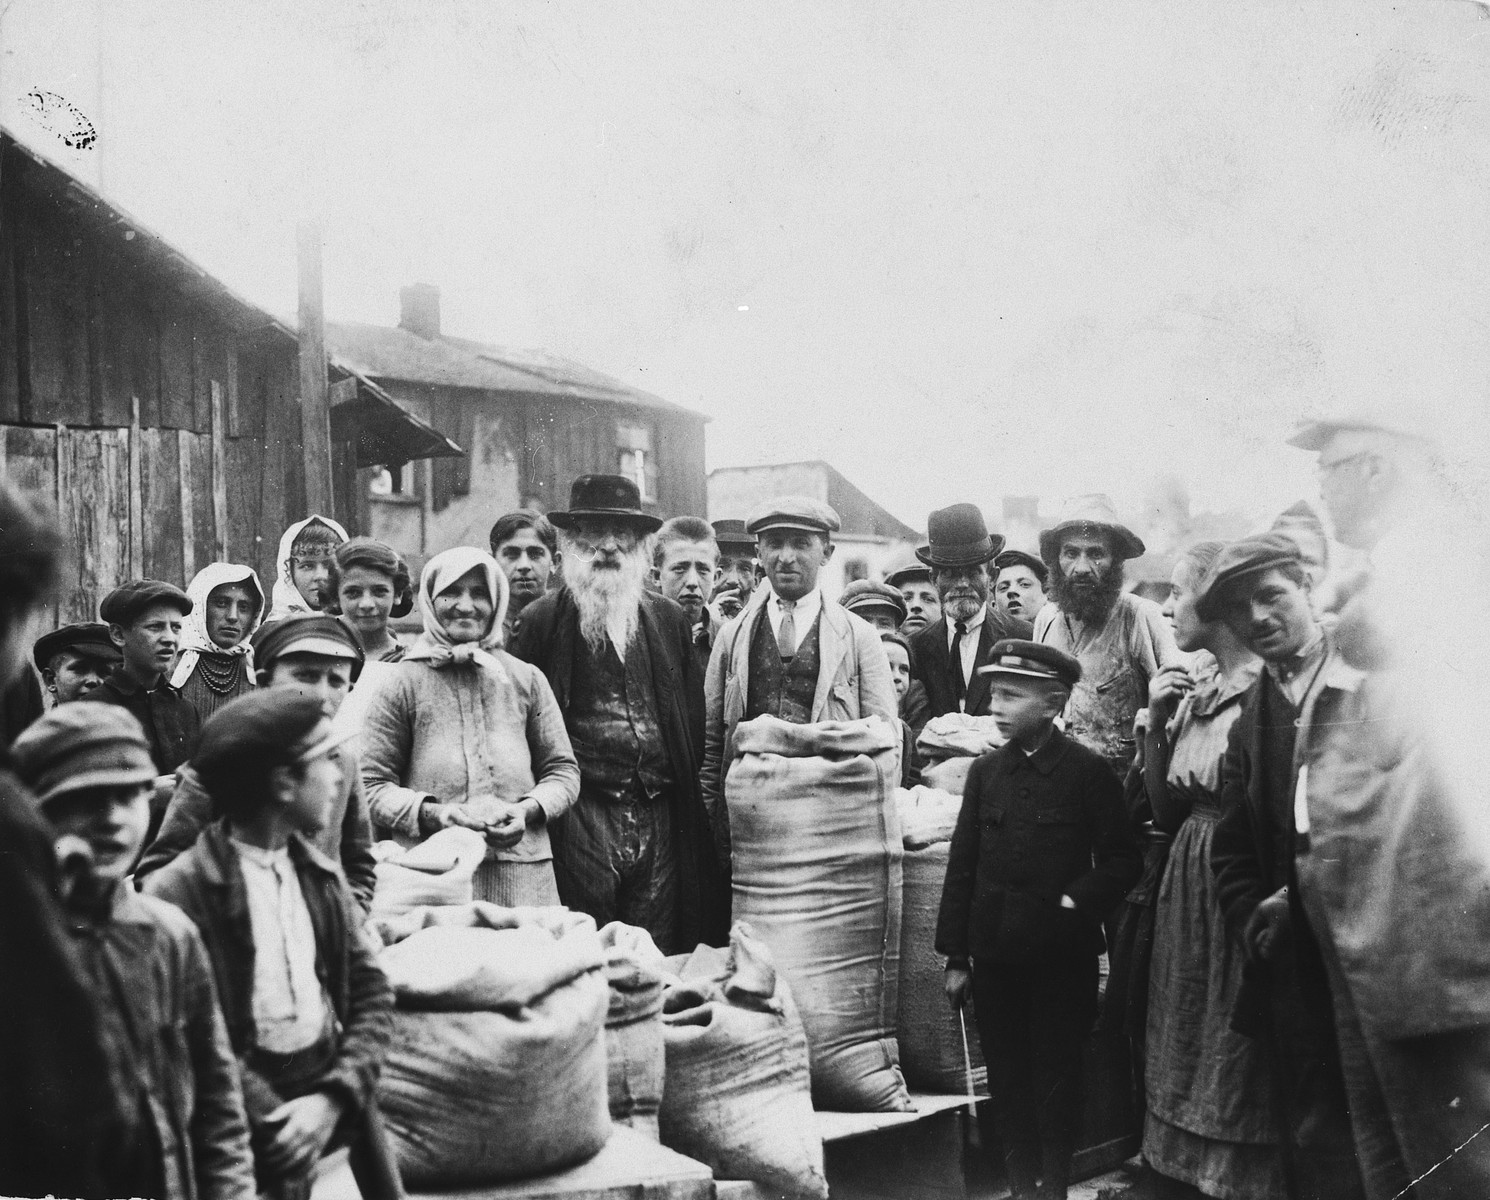 Group portrait of a Jewish family standing in front of the their grains stall in the Drohobycz marketplace.  In the center left are the grandparents of the donor, in the center is the donor's father, Herman Lustig, and on the right is Harry Handel, a relative from America.